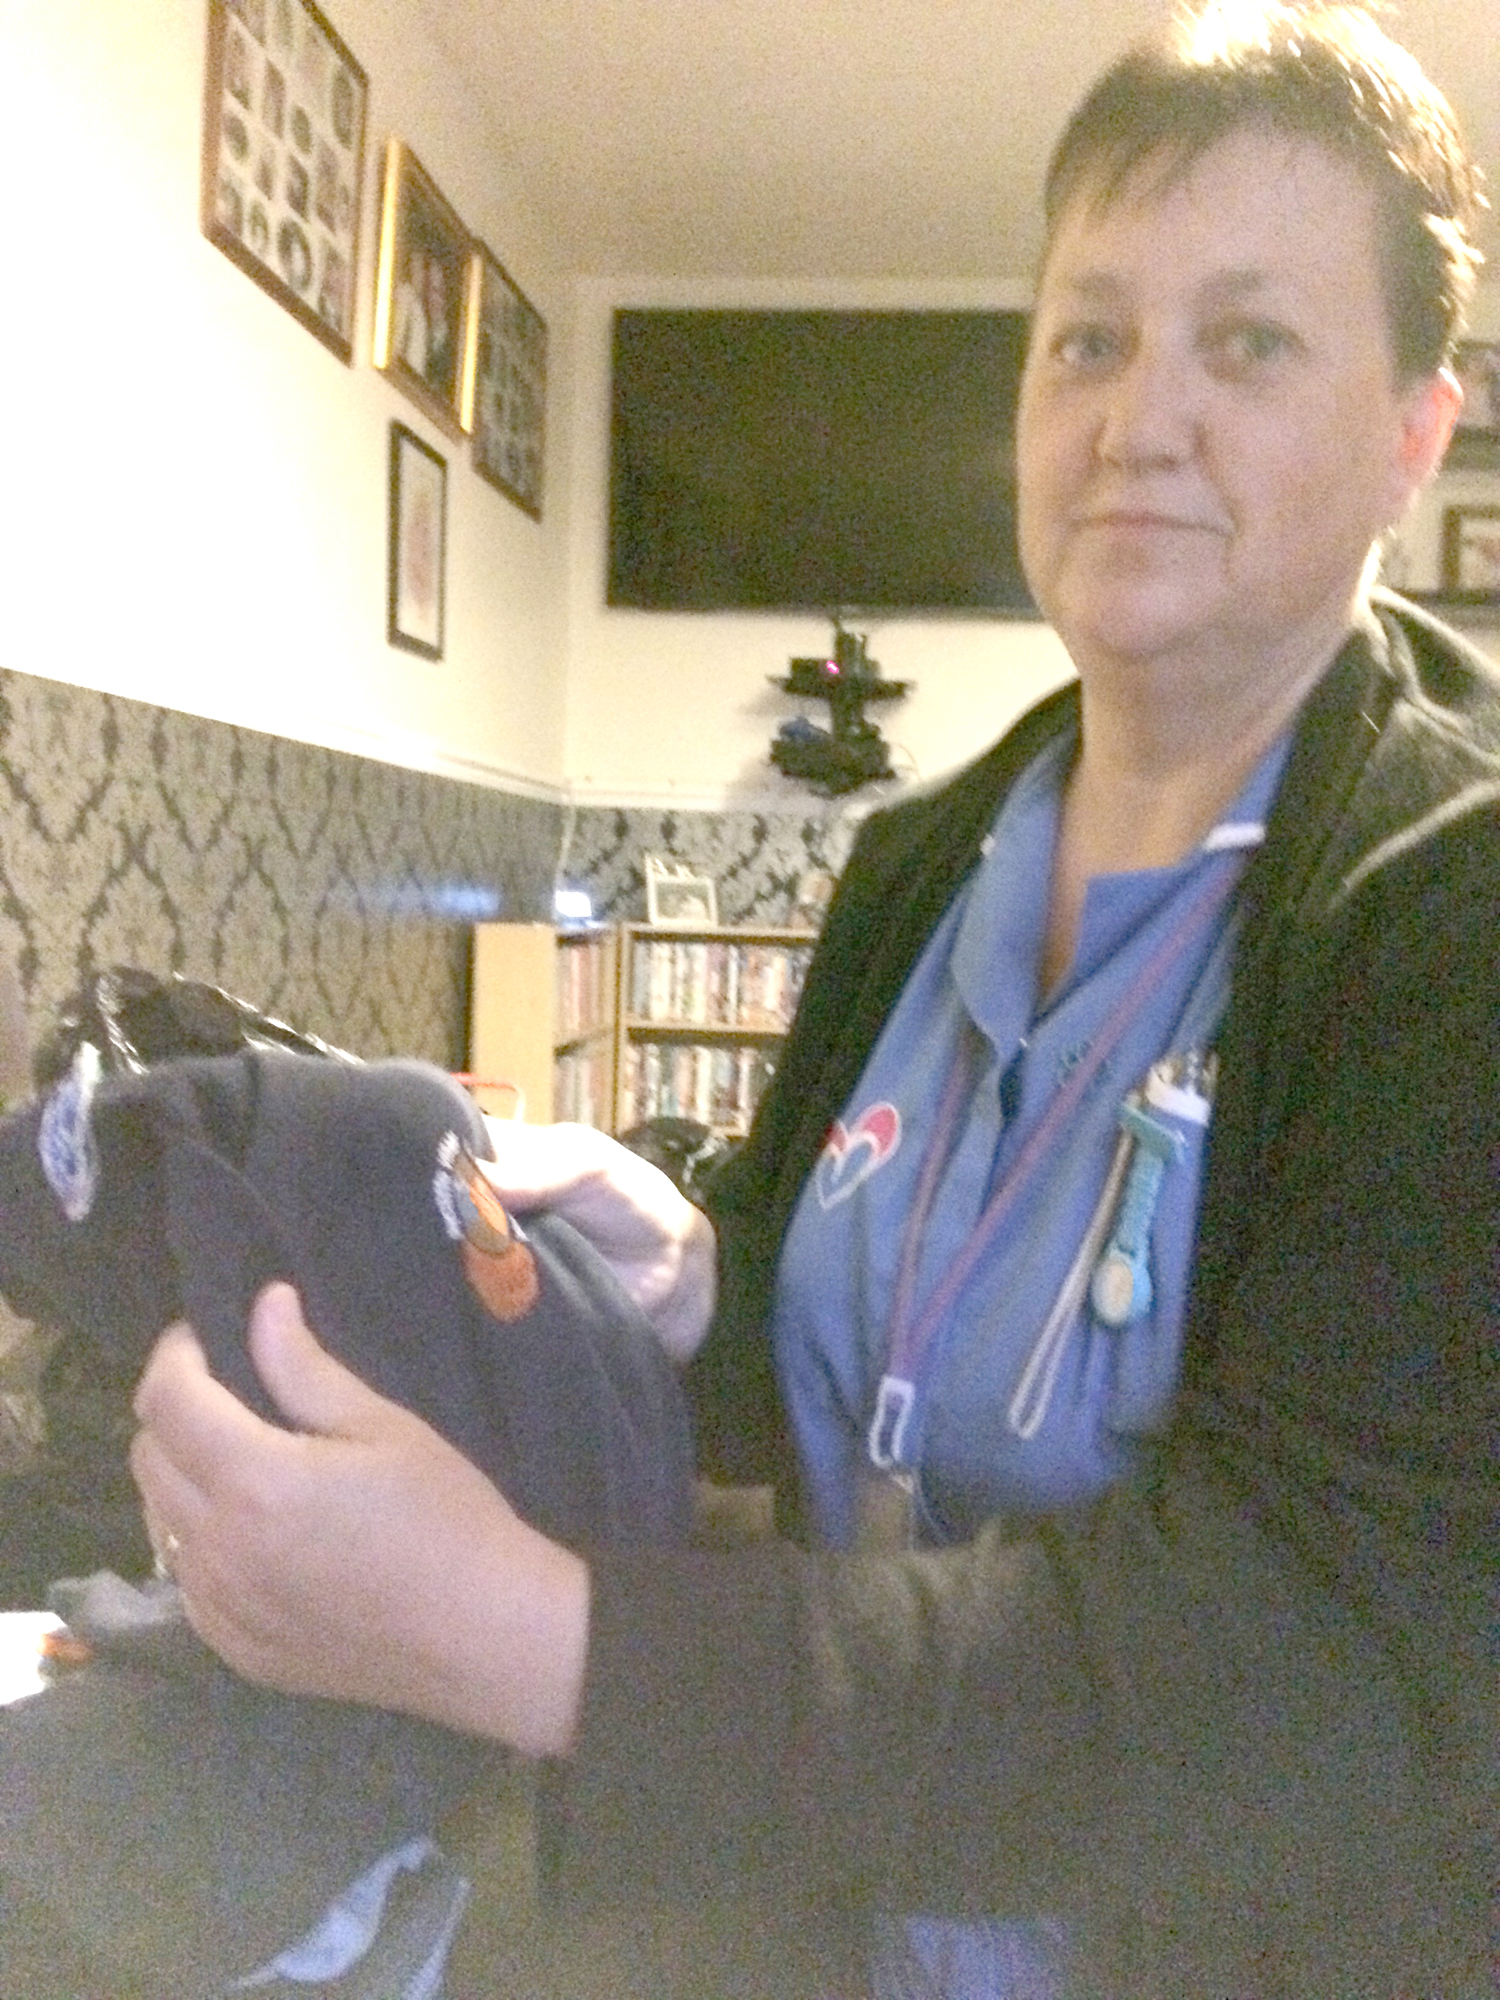 Used Uniforms Help 81 Aycliffe Families